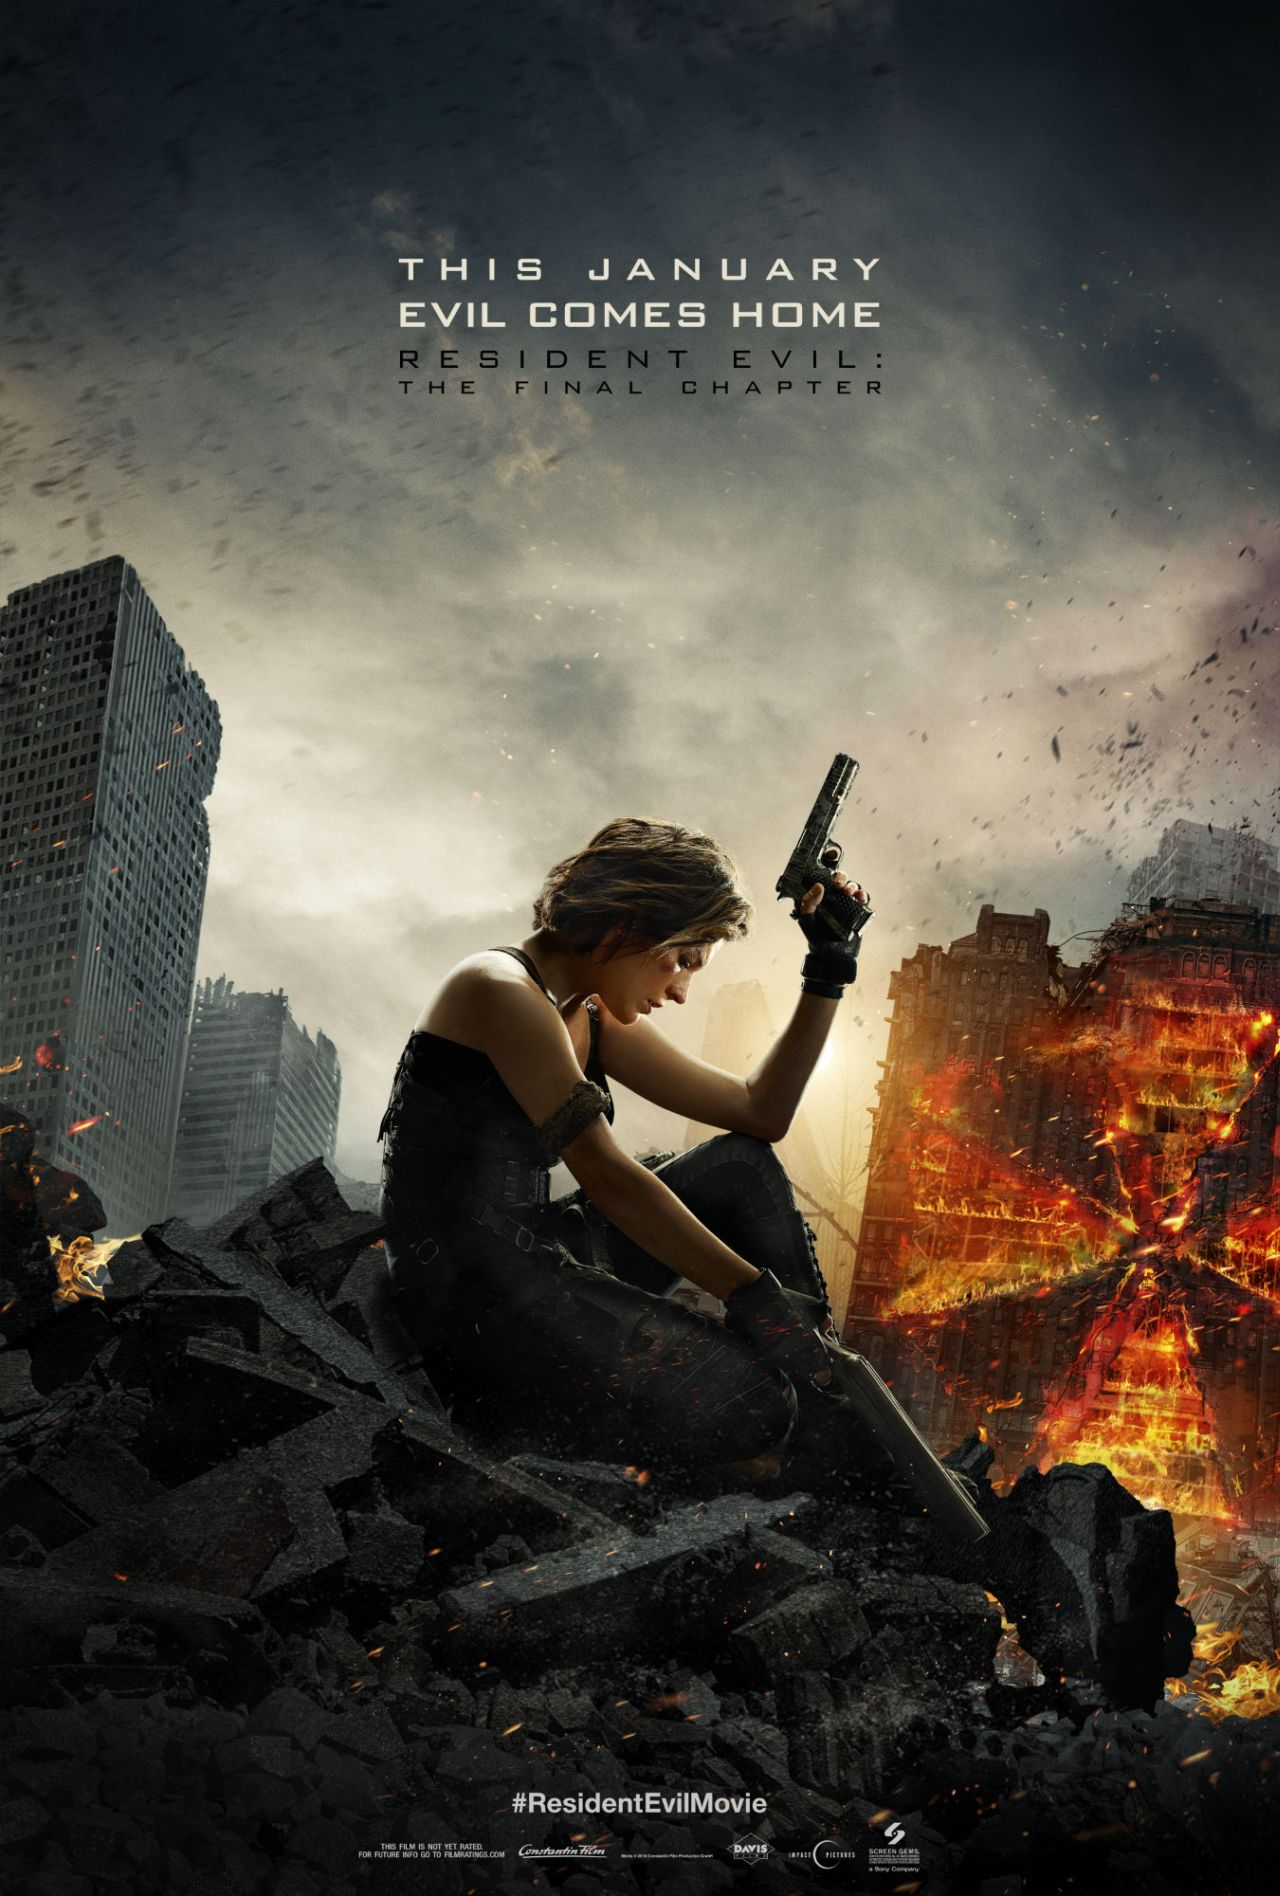 Alice Seeks Revenge In New International Trailer For Resident Evil: The Final Chapter